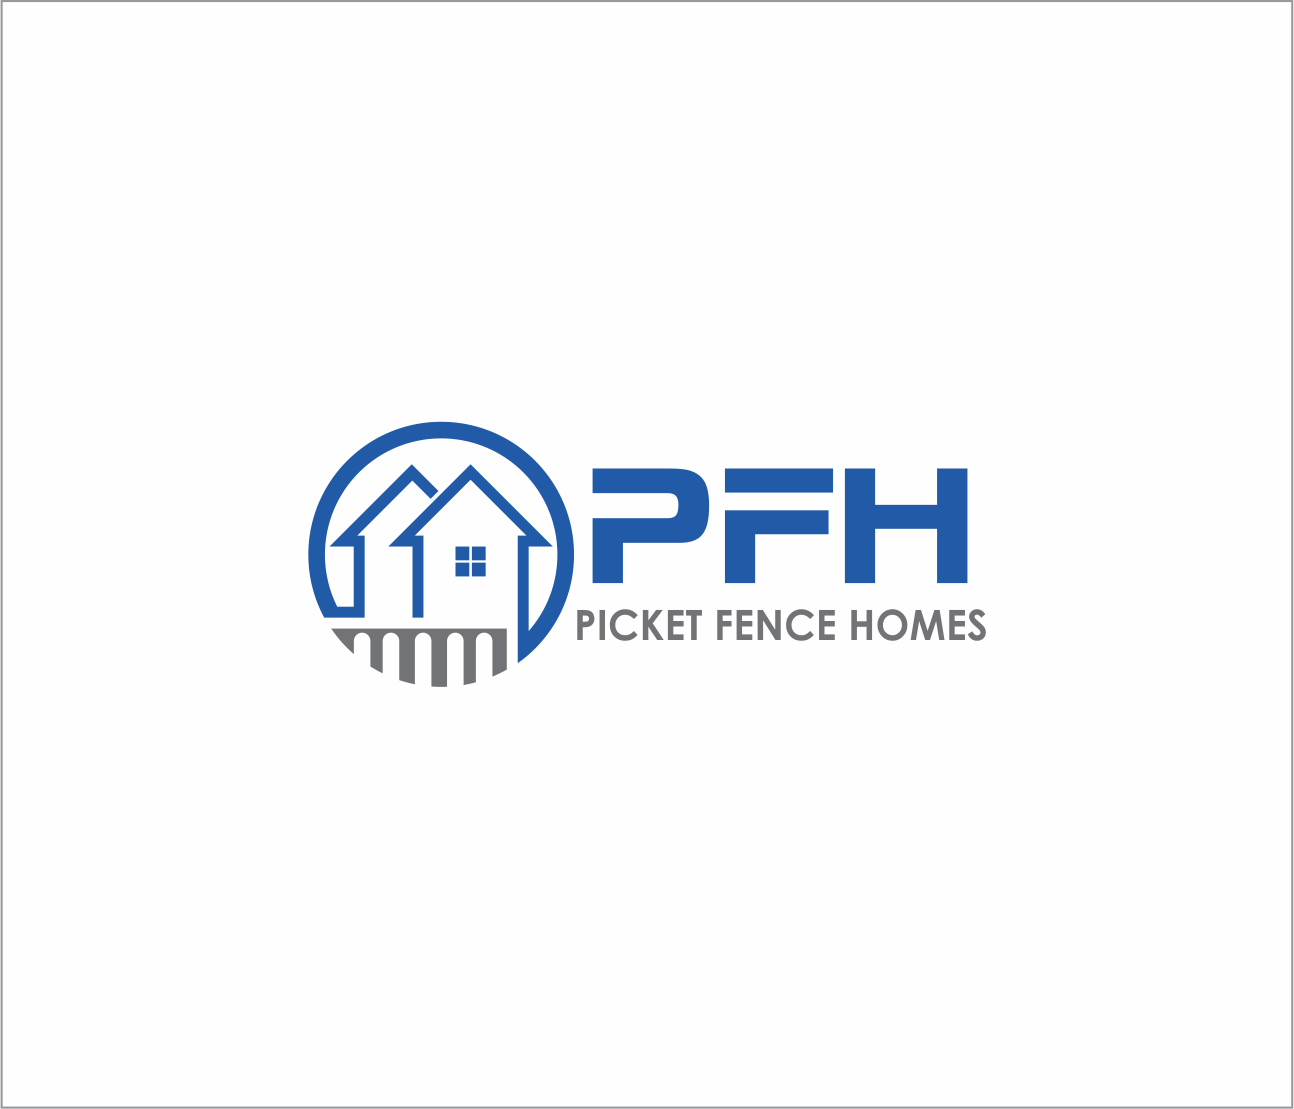 Logo Design by Armada Jamaluddin - Entry No. 17 in the Logo Design Contest Picket Fence Homes Logo Design.